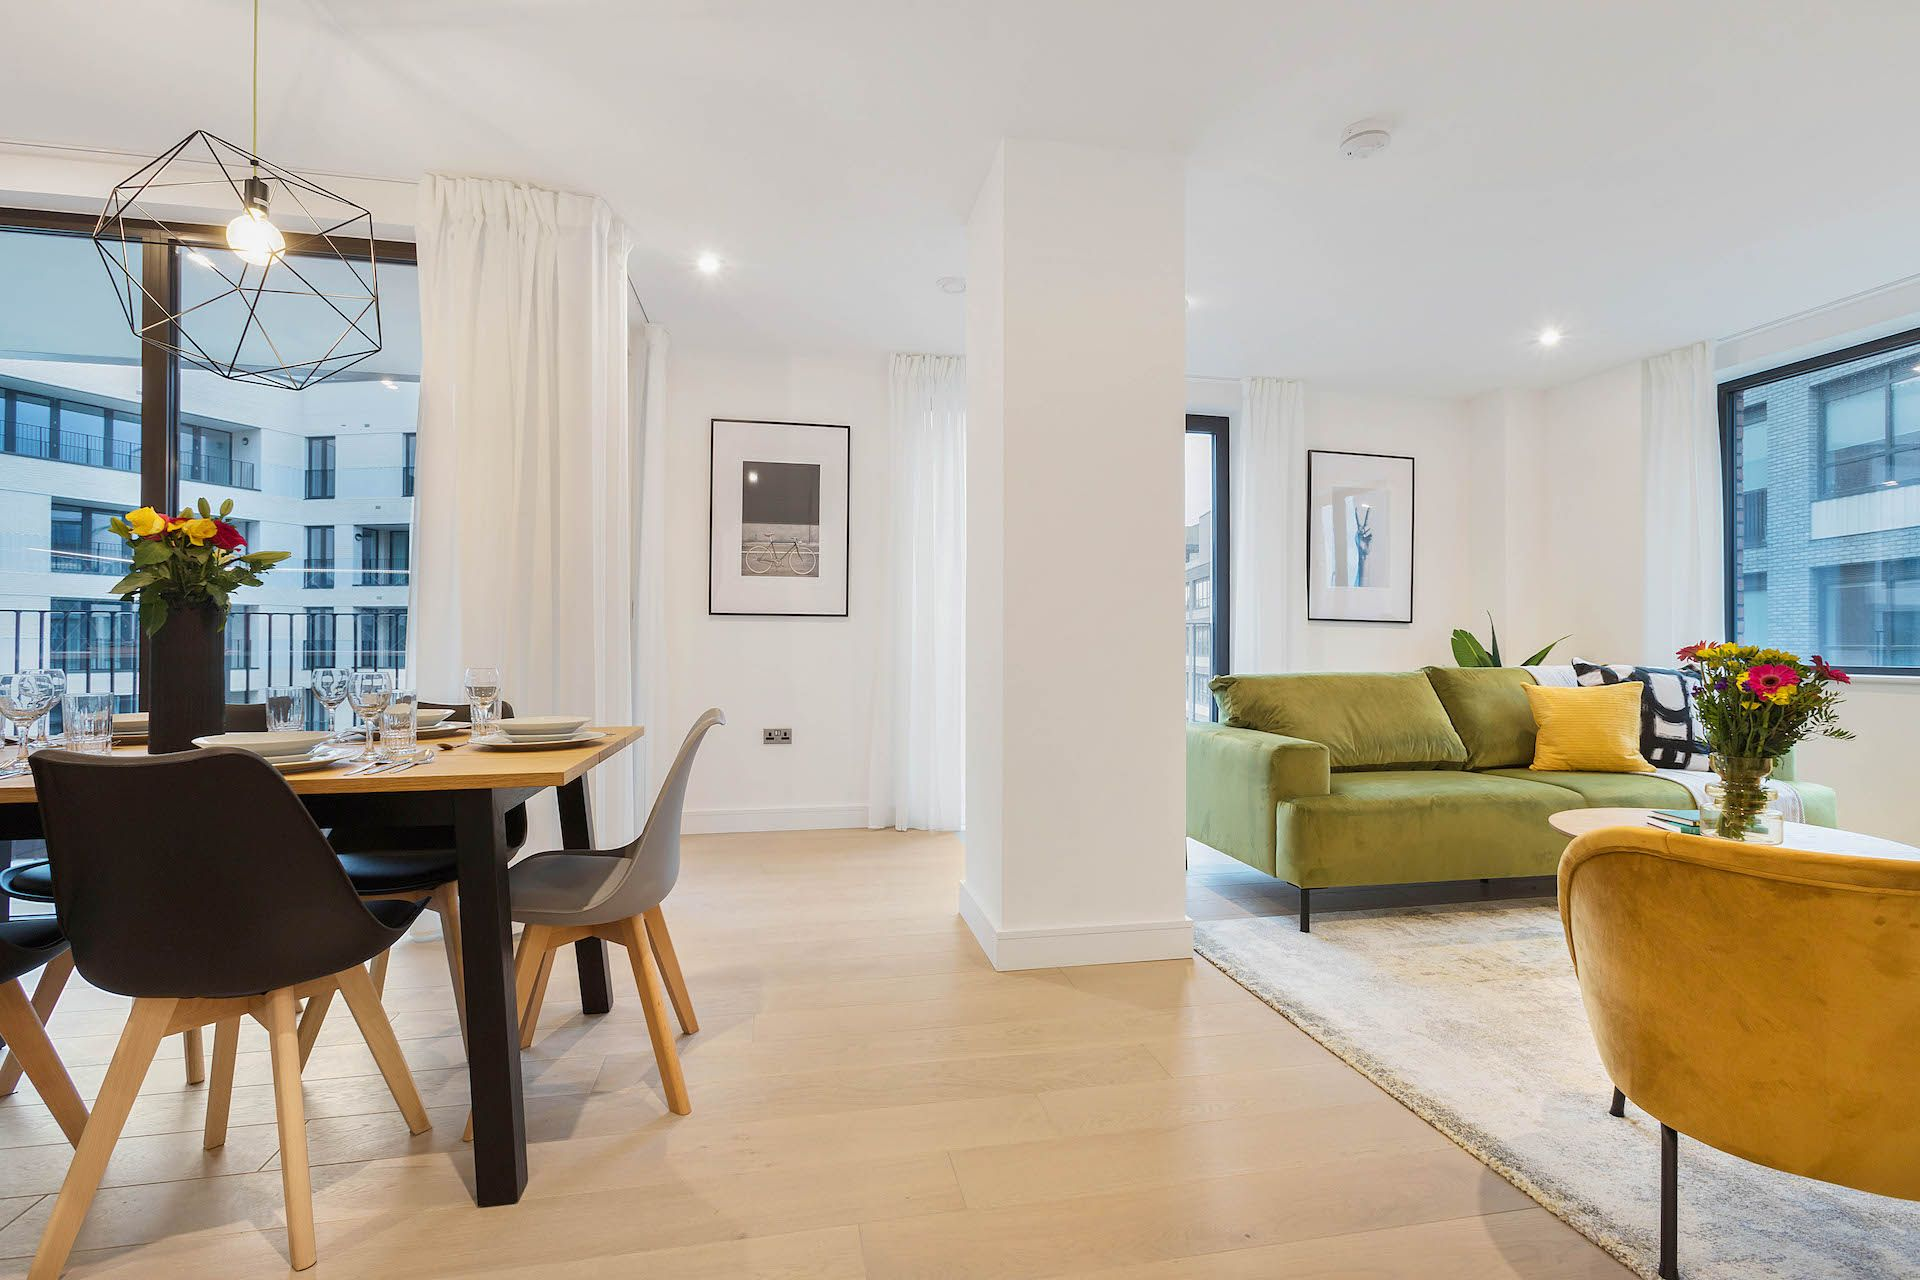 2 Bedroom apartment to rent in London SHO-RO-0083